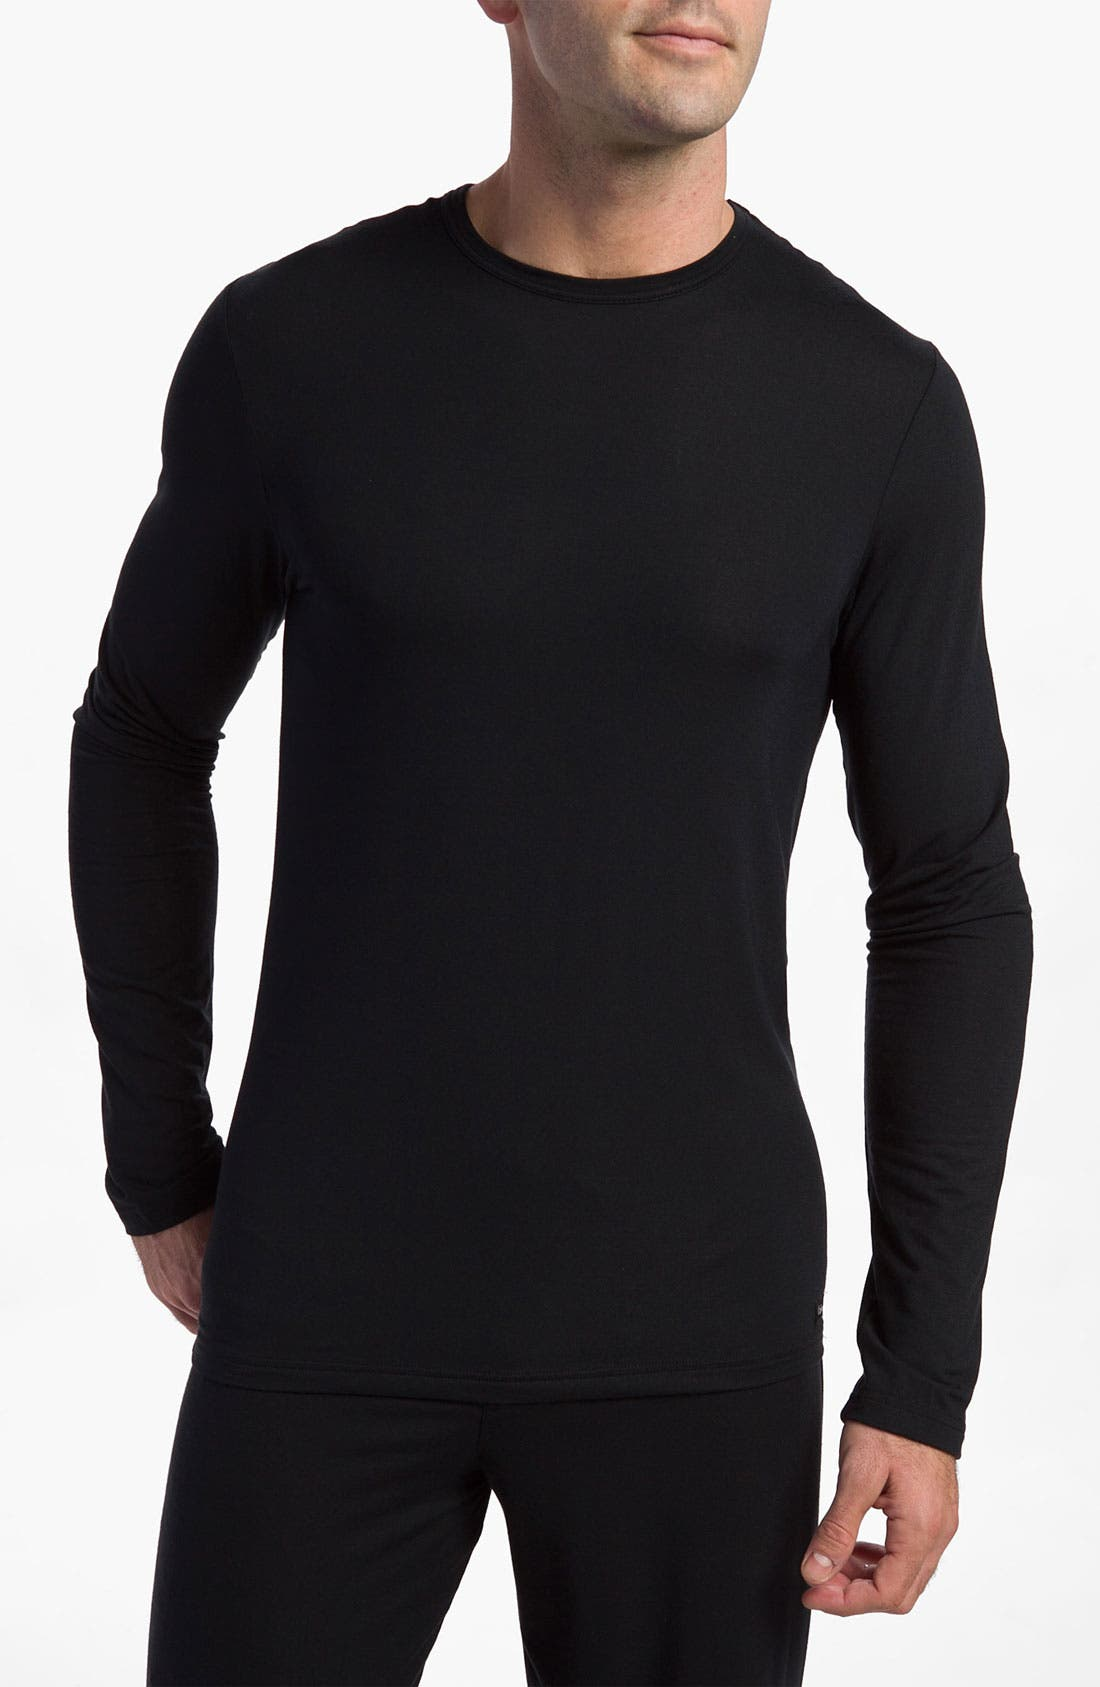 Alternate Image 1 Selected - Calvin Klein 'U1139' Micromodal Long Sleeve T-Shirt